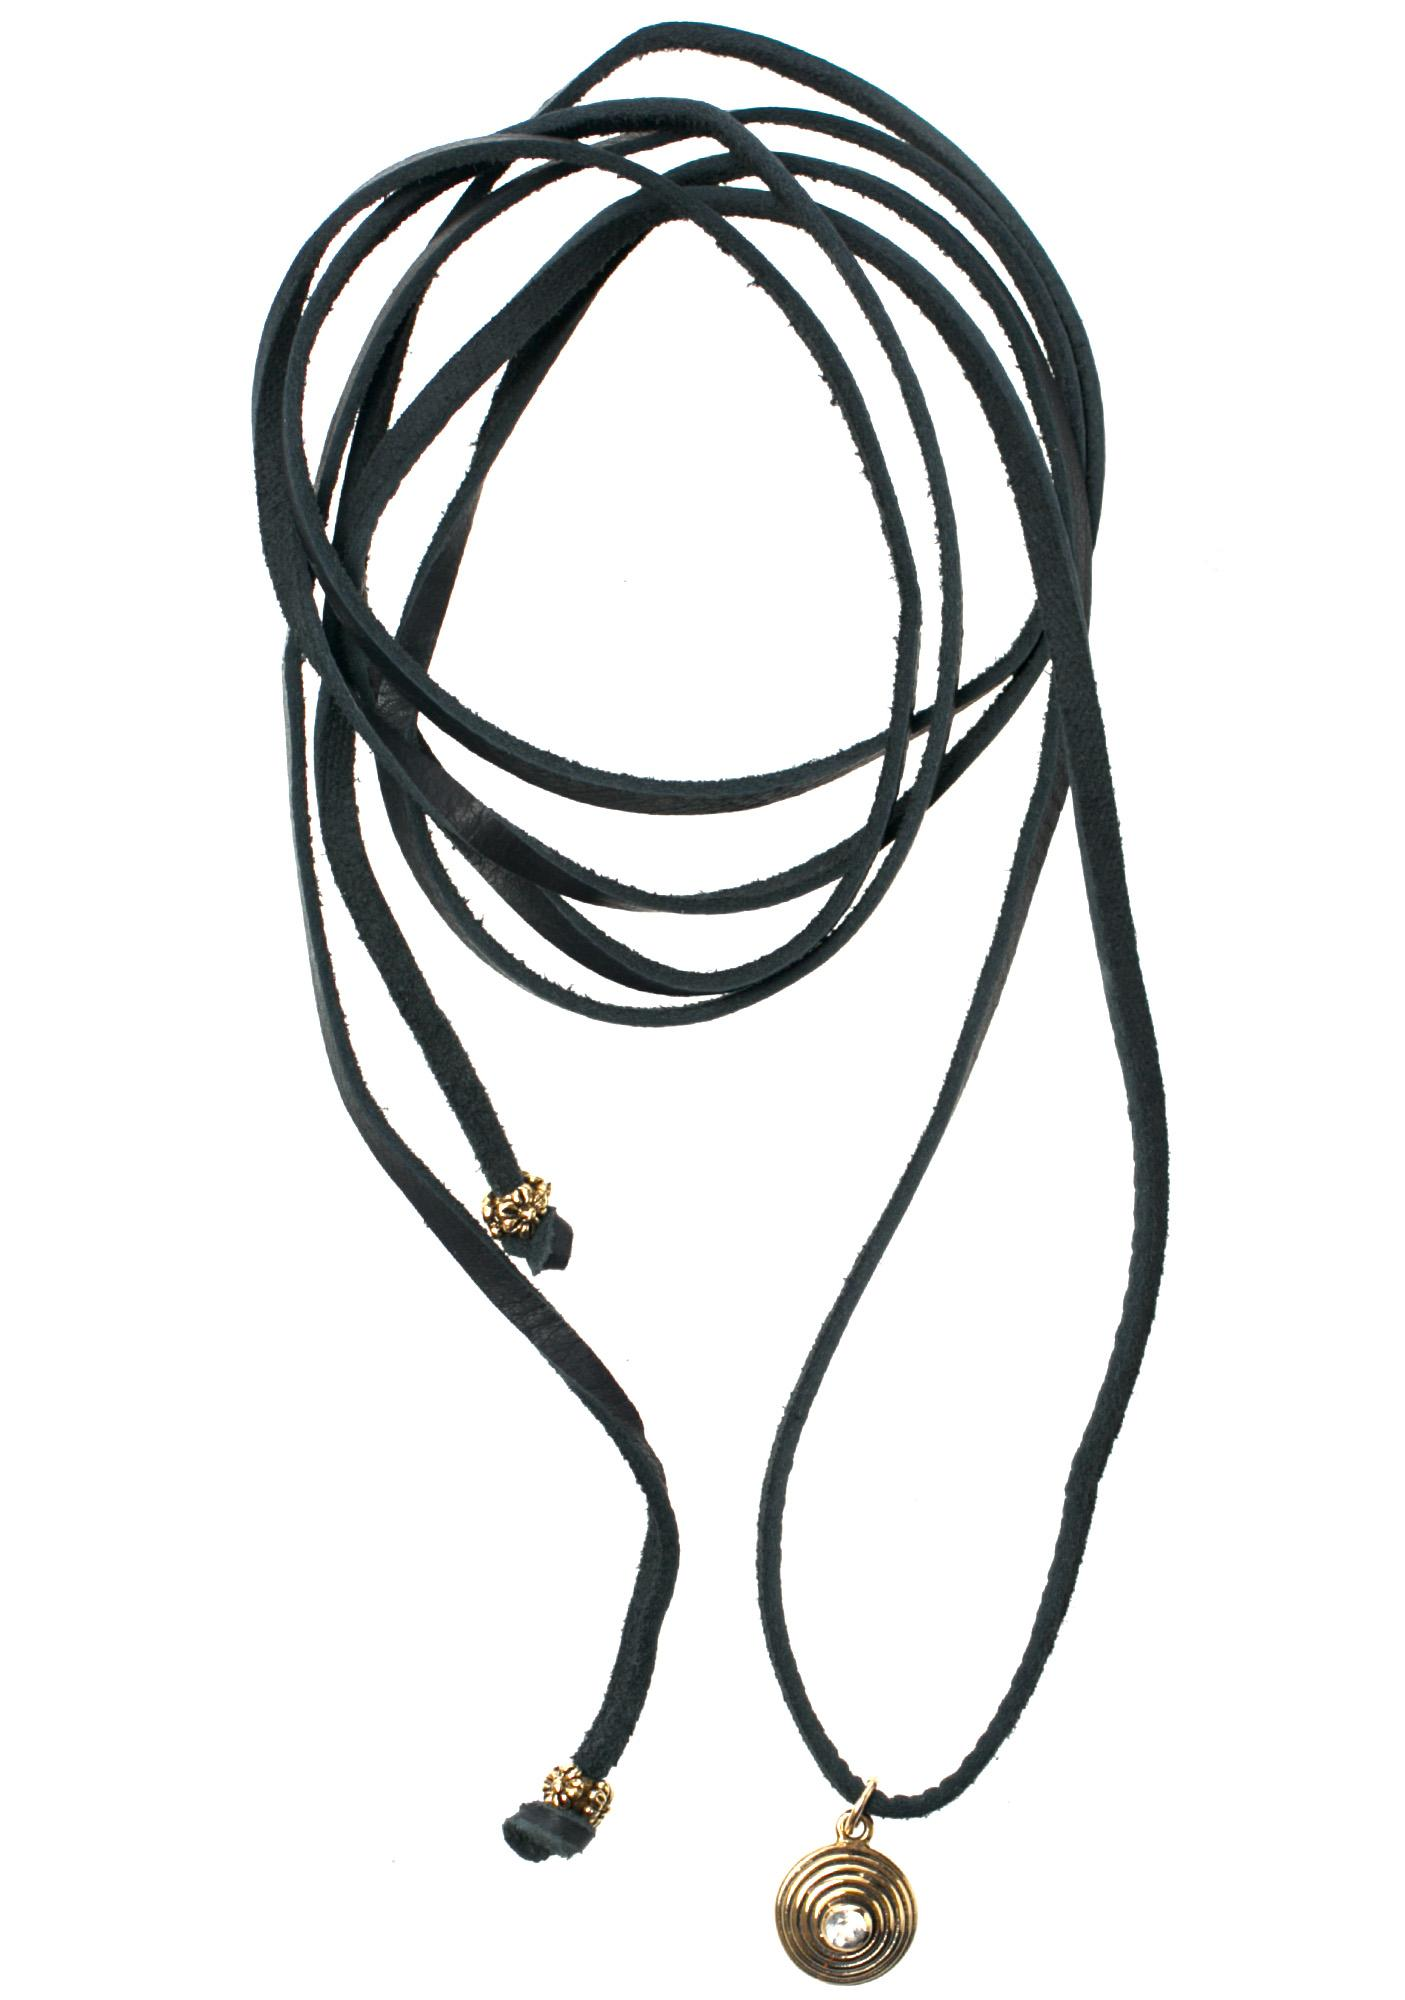 Fraiser Sterling Karma Bolo Wrap Necklace